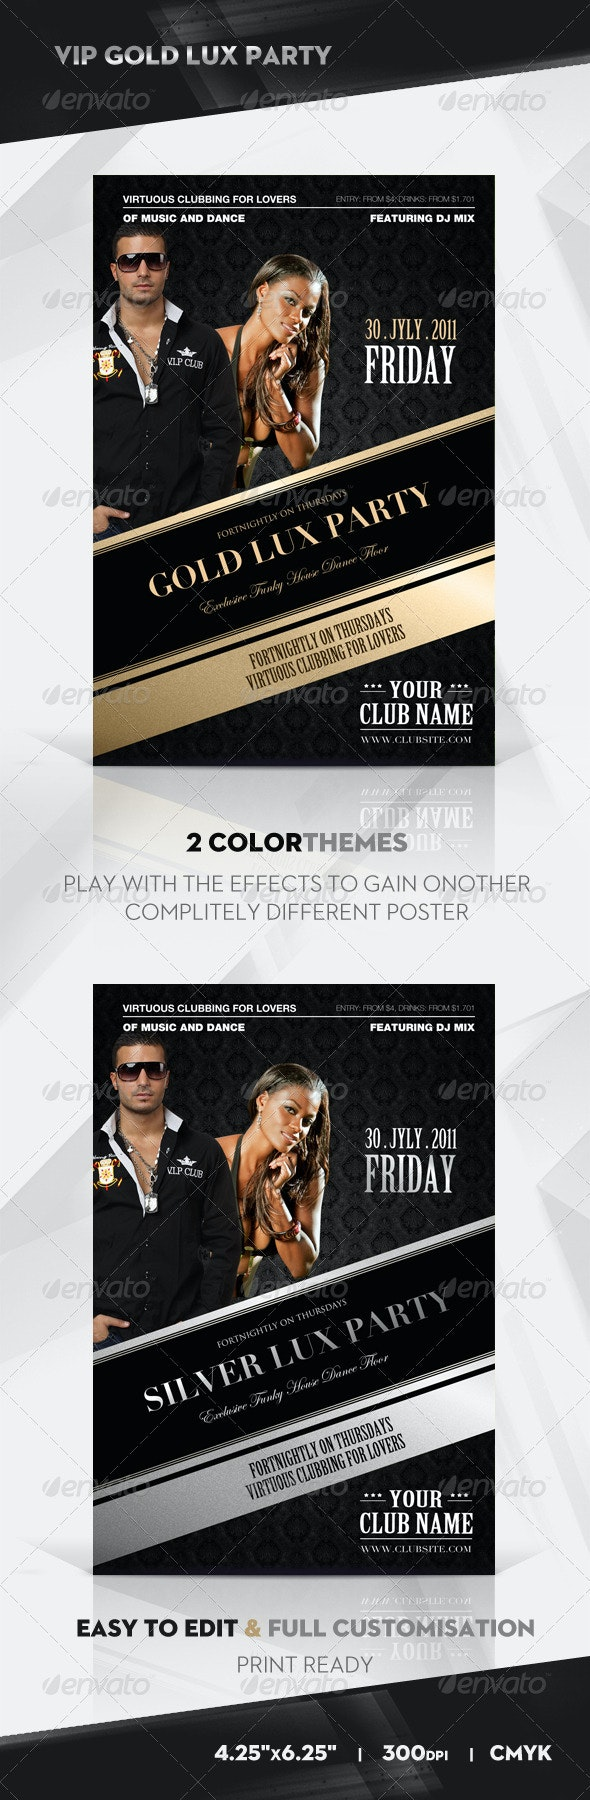 Gold Vip Lux Party Flyer / Poster - Clubs & Parties Events